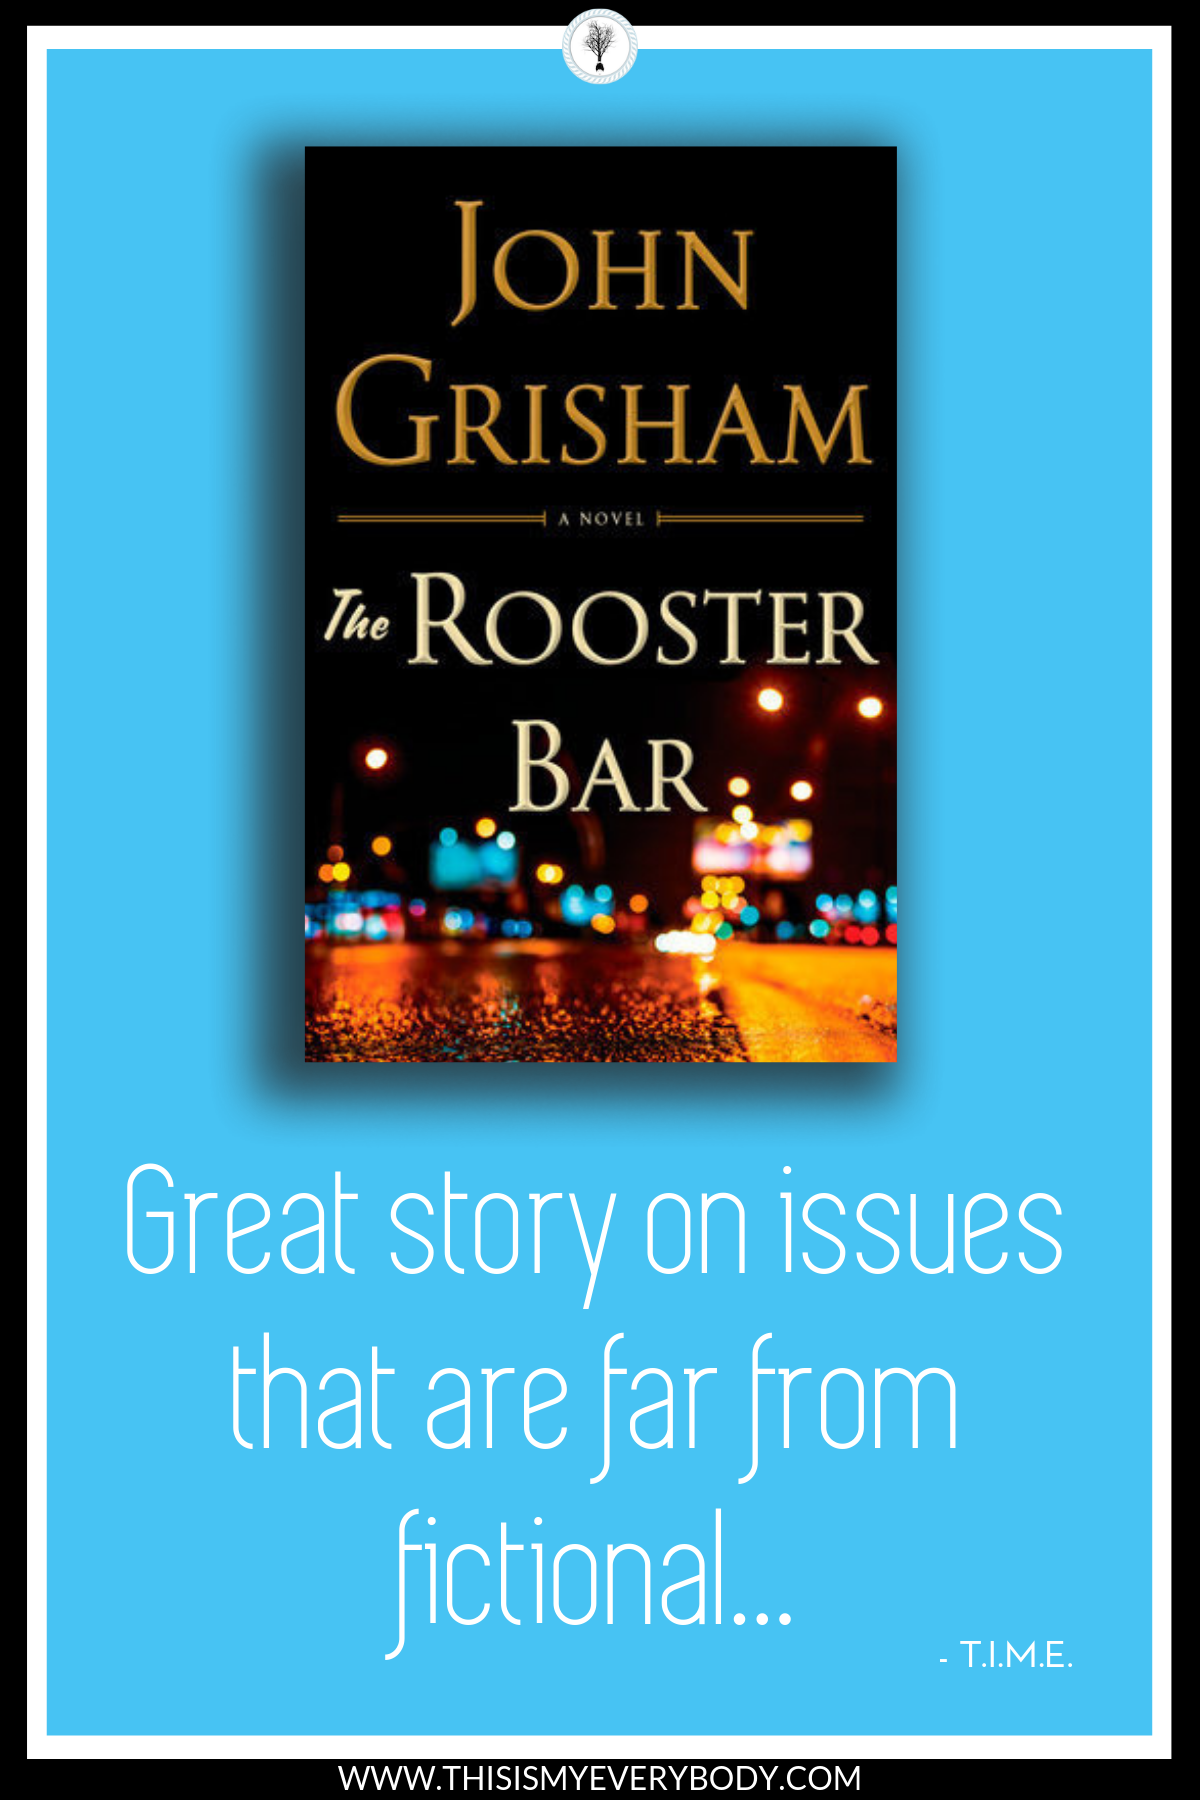 With issues that are far from fictional, The Rooster Bar by John Grisham hits the mark on a page-turning story that is built upon overwhelming circumstances that are a part of many people's daily realities... | Book Review: The Rooster Bar by John Grisham | This Is My Everybody - Books, Inspiration and Home Ideas